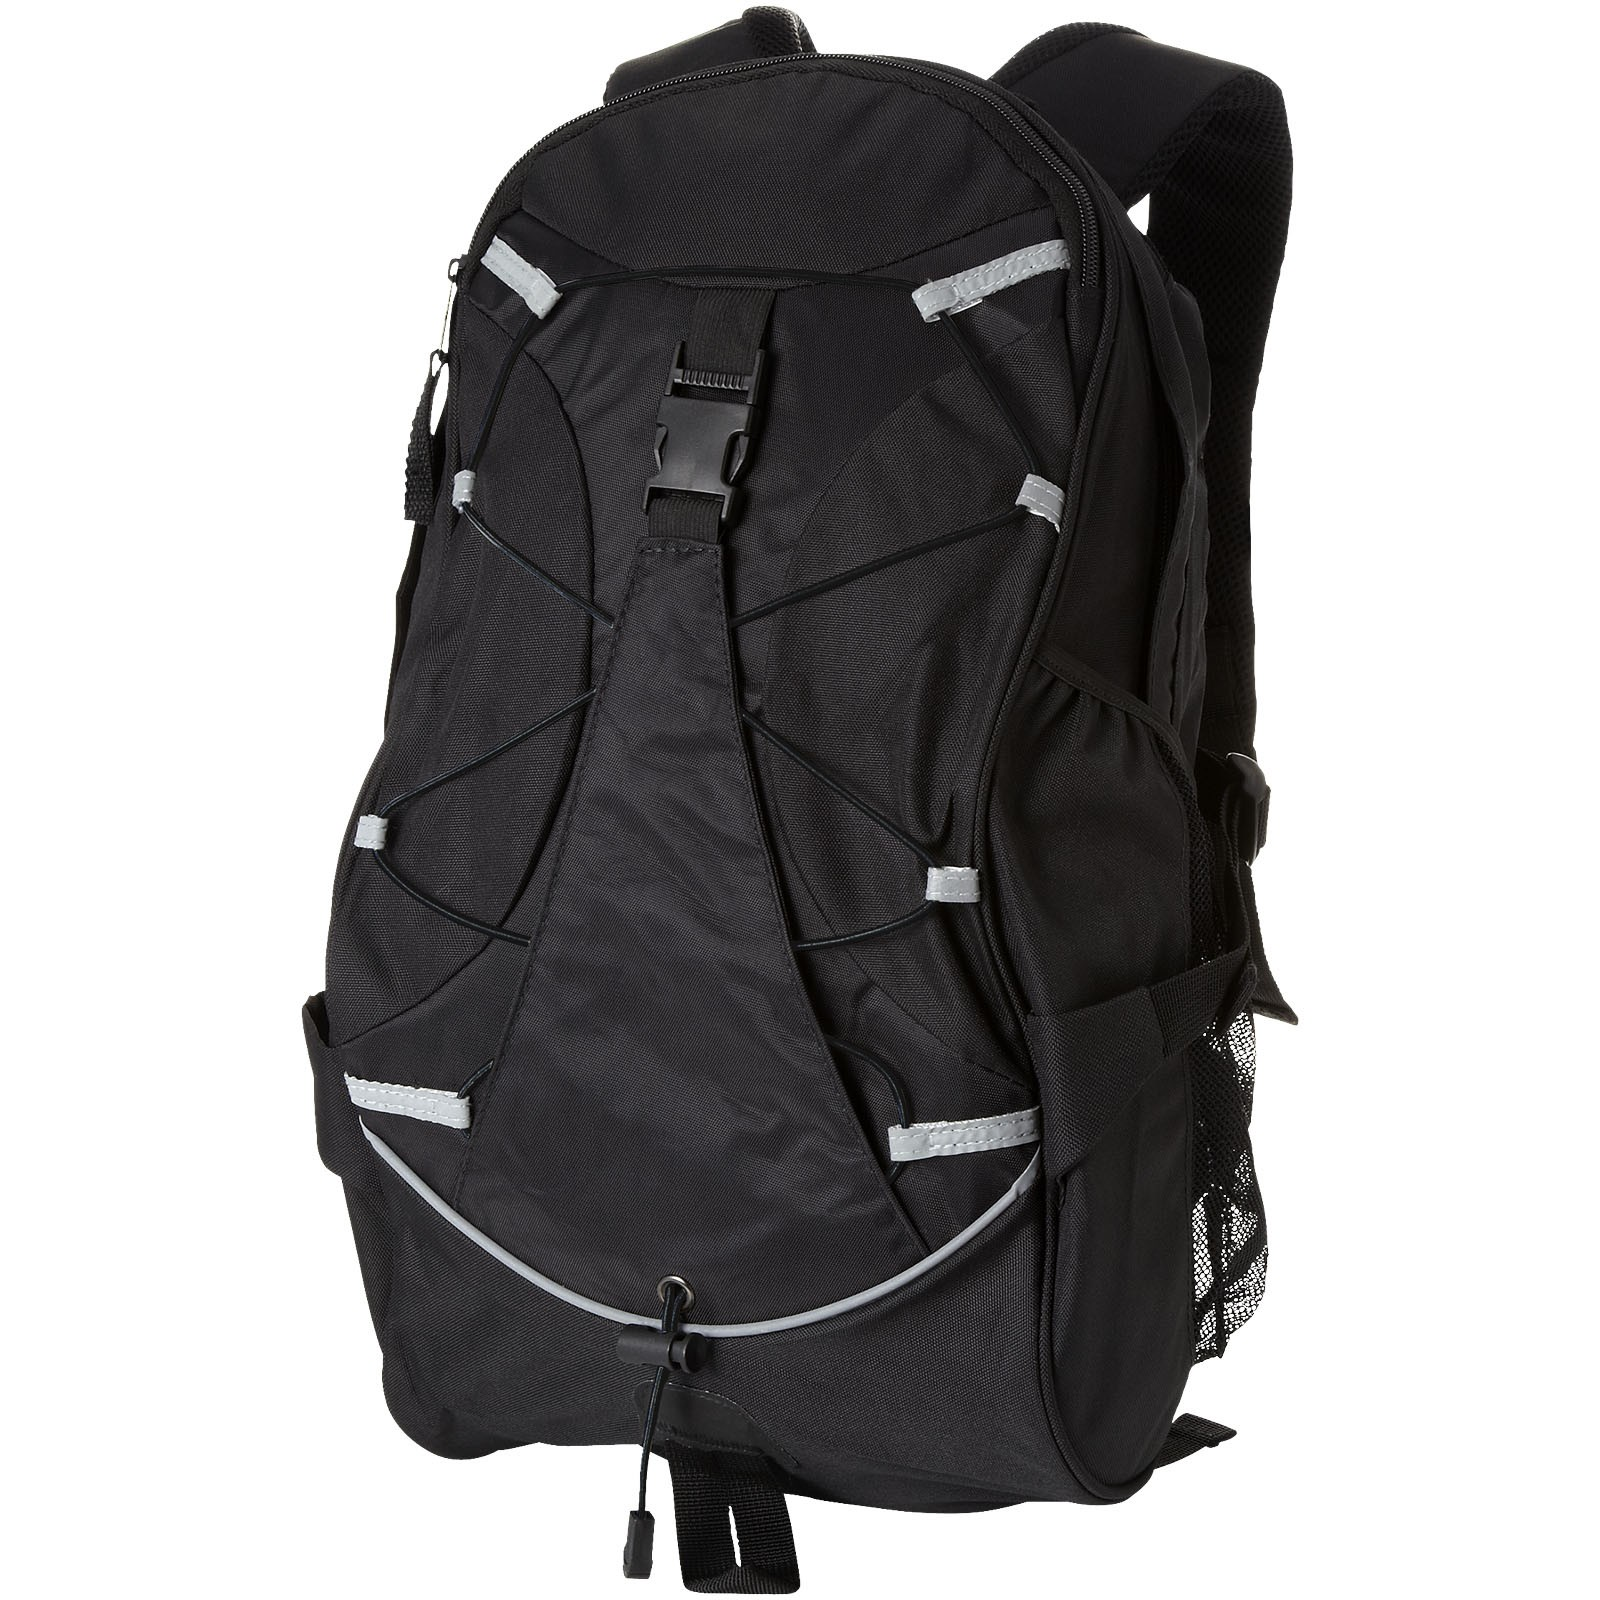 Hikers elastic bungee cord backpack - Solid black